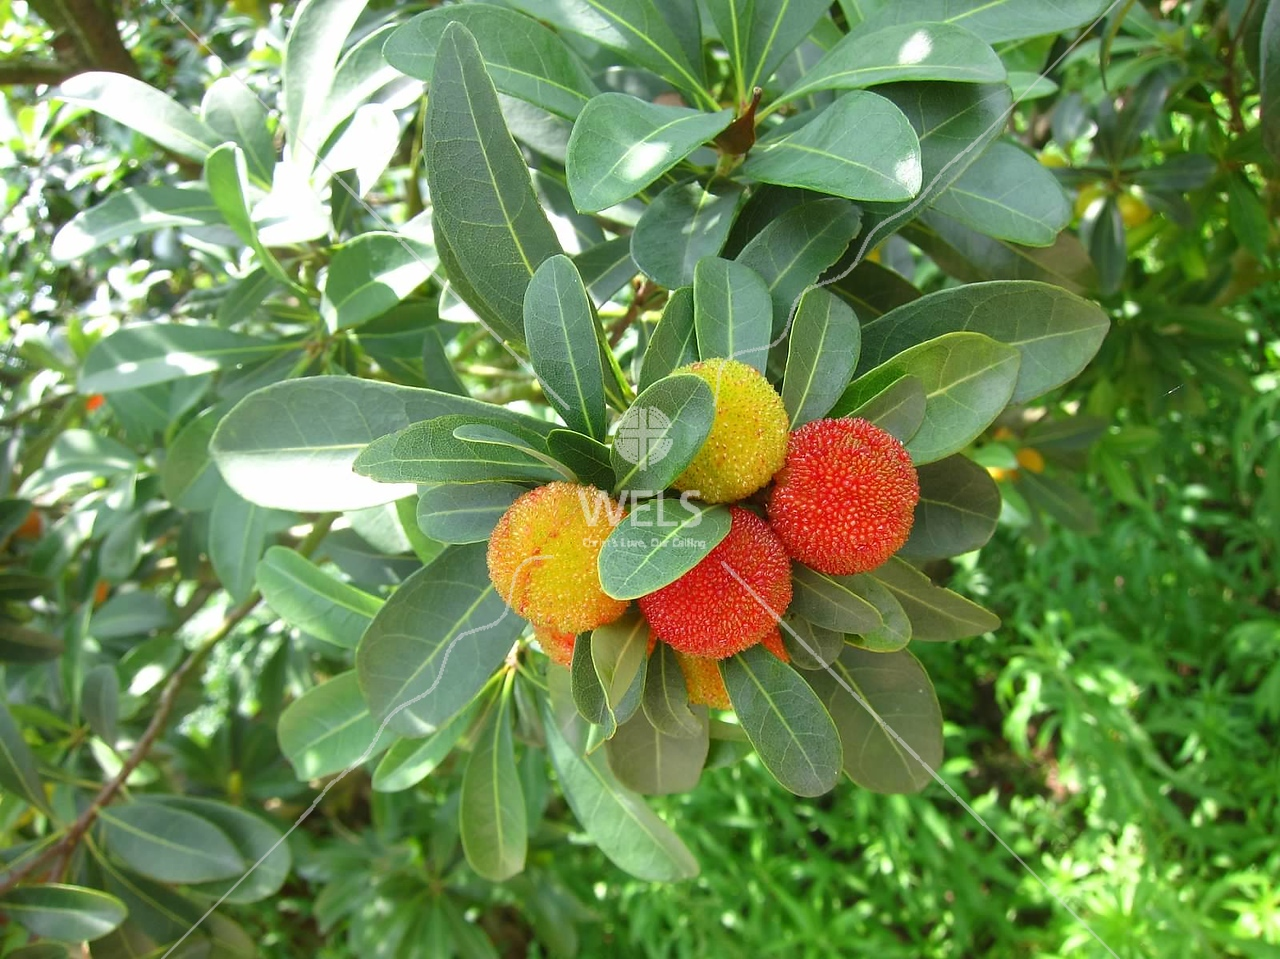 YangMay is the name of this cherry-sized fruit or in English, Bay Berry by kstellick